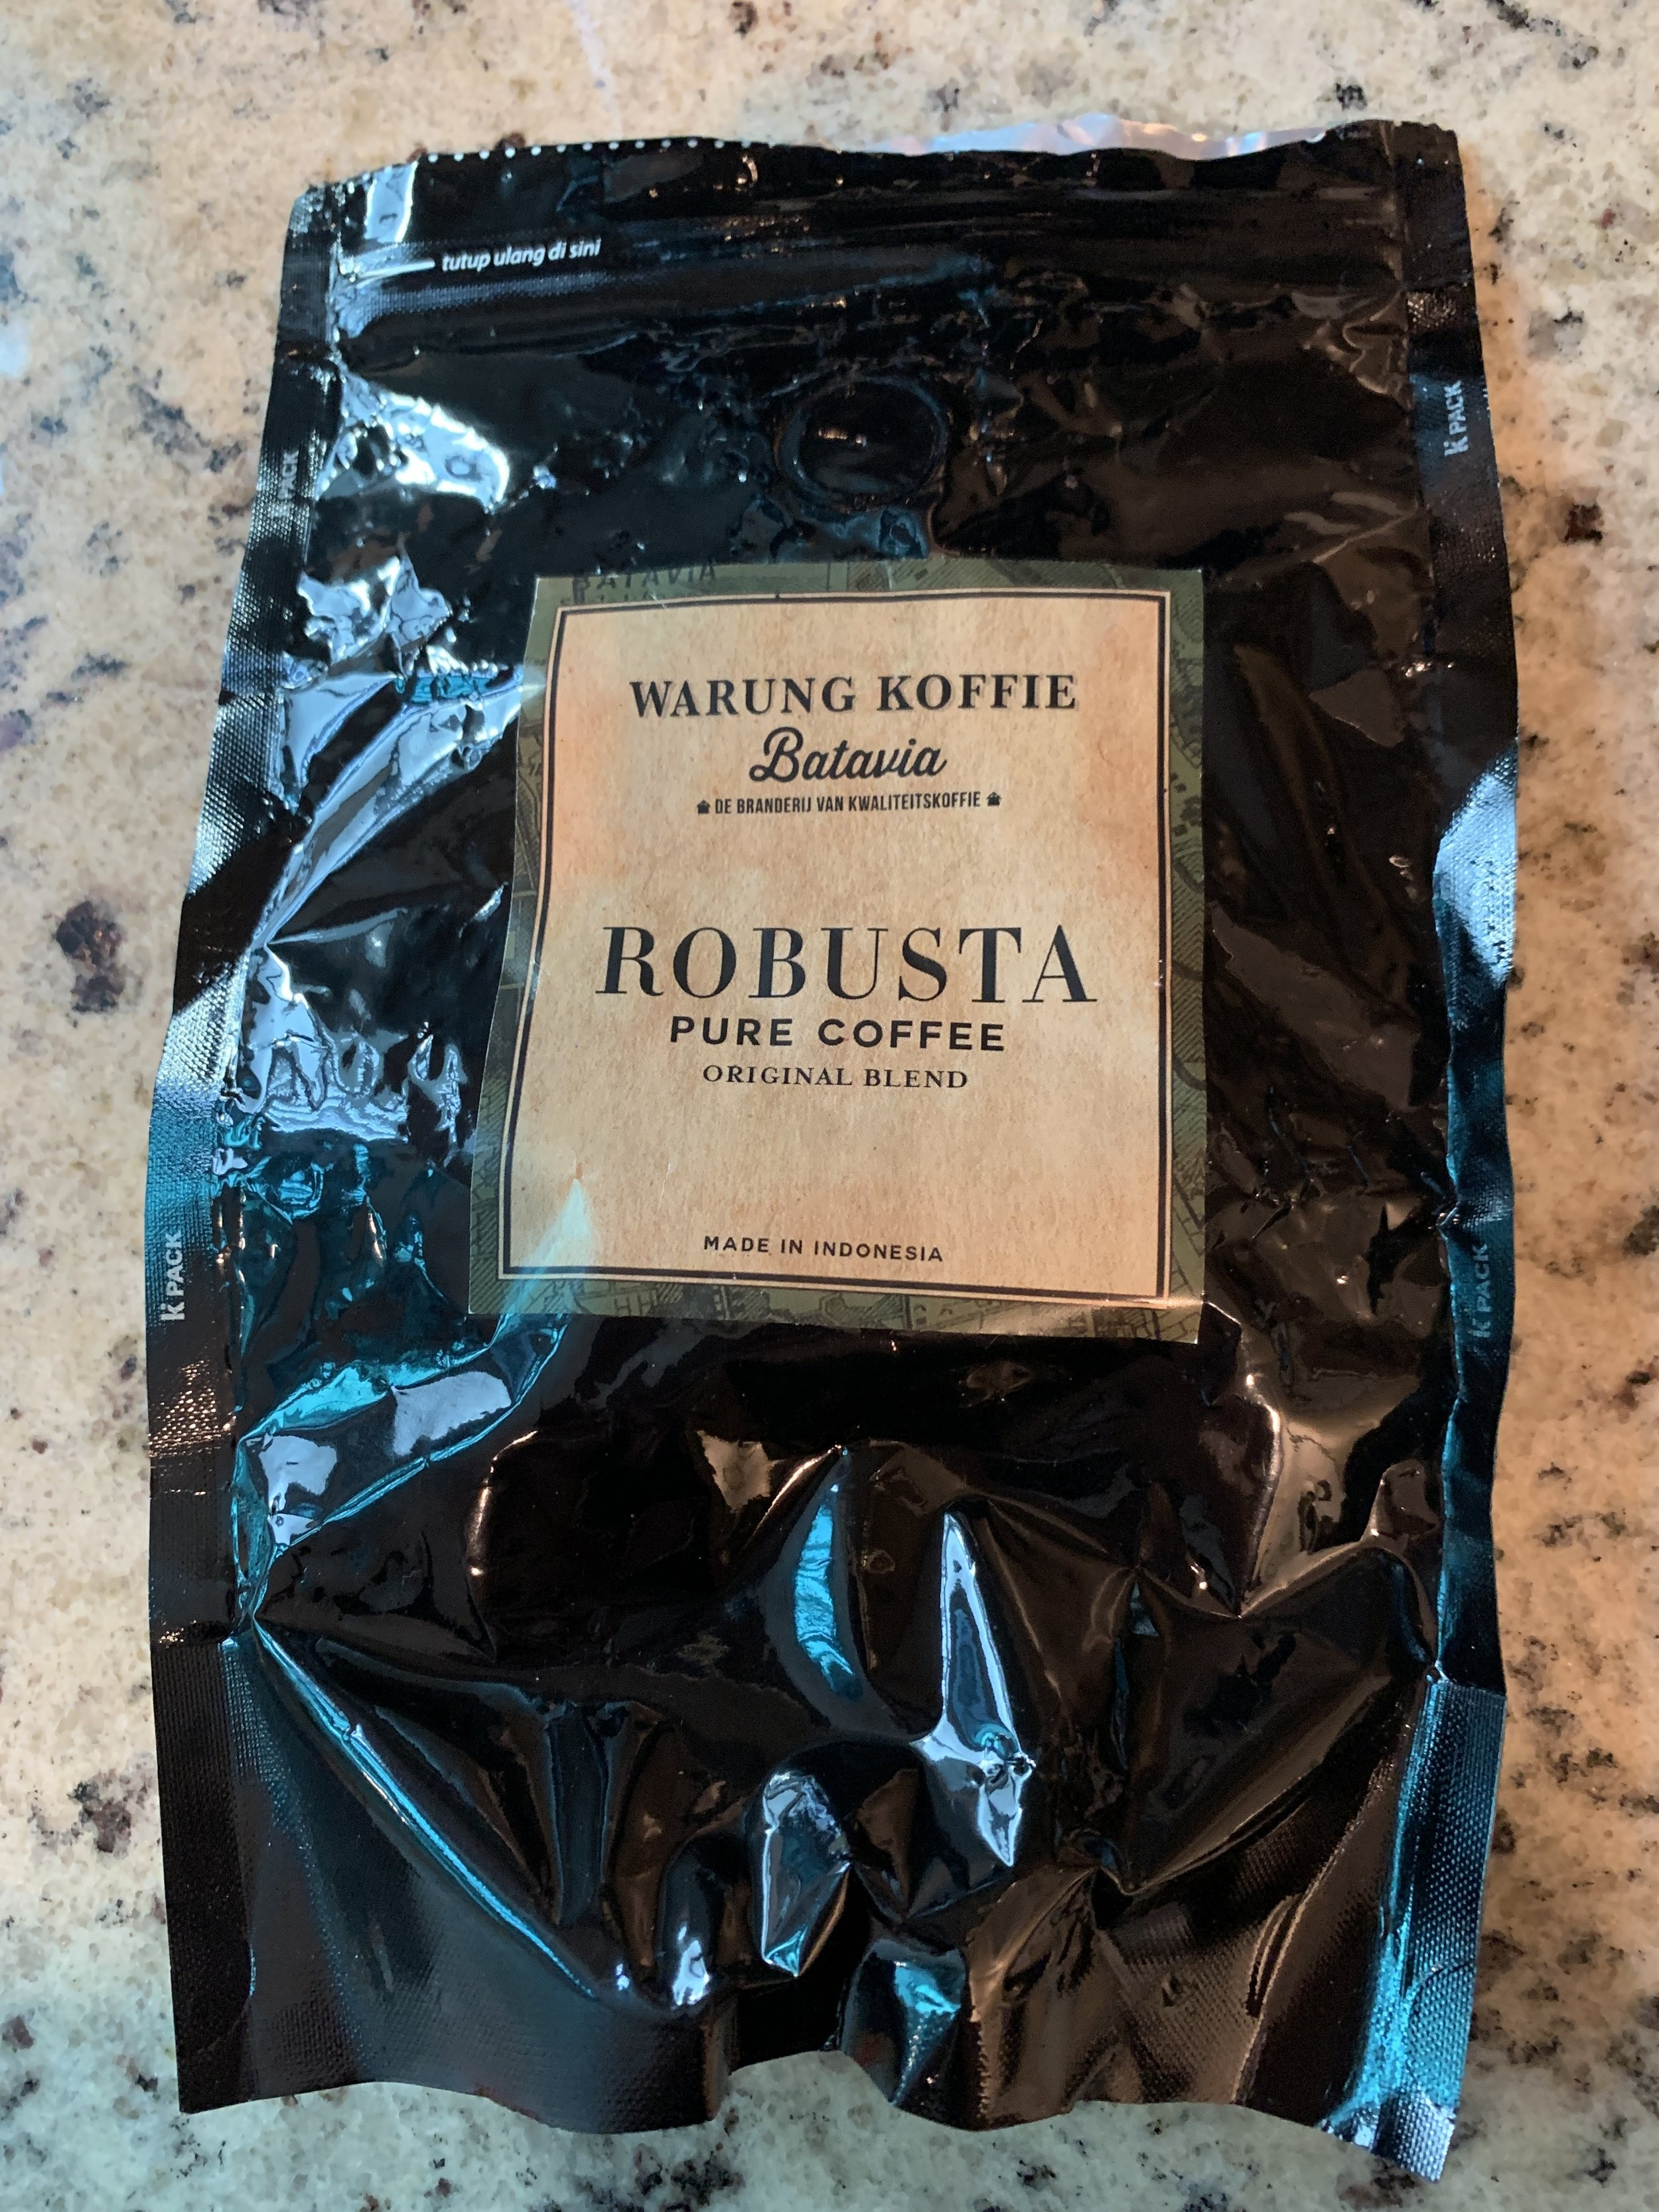 Warung Koffie Batavia - A bag of these Robusta beans was picked up on a trip to the Indonesian capital city of Jakarta at a Dutch colony inspired coffee shop. I knew Indonesian coffee was strong but this roast was perfectly dark, chocolate, velvet, butter, and caramel. If you're ever in Jakarta, pick up a bag of their beans. Warung Koffie Batavia is a restaurant serving up rijsstafel (rice table) and other typical Indonesian dishes and snacks.